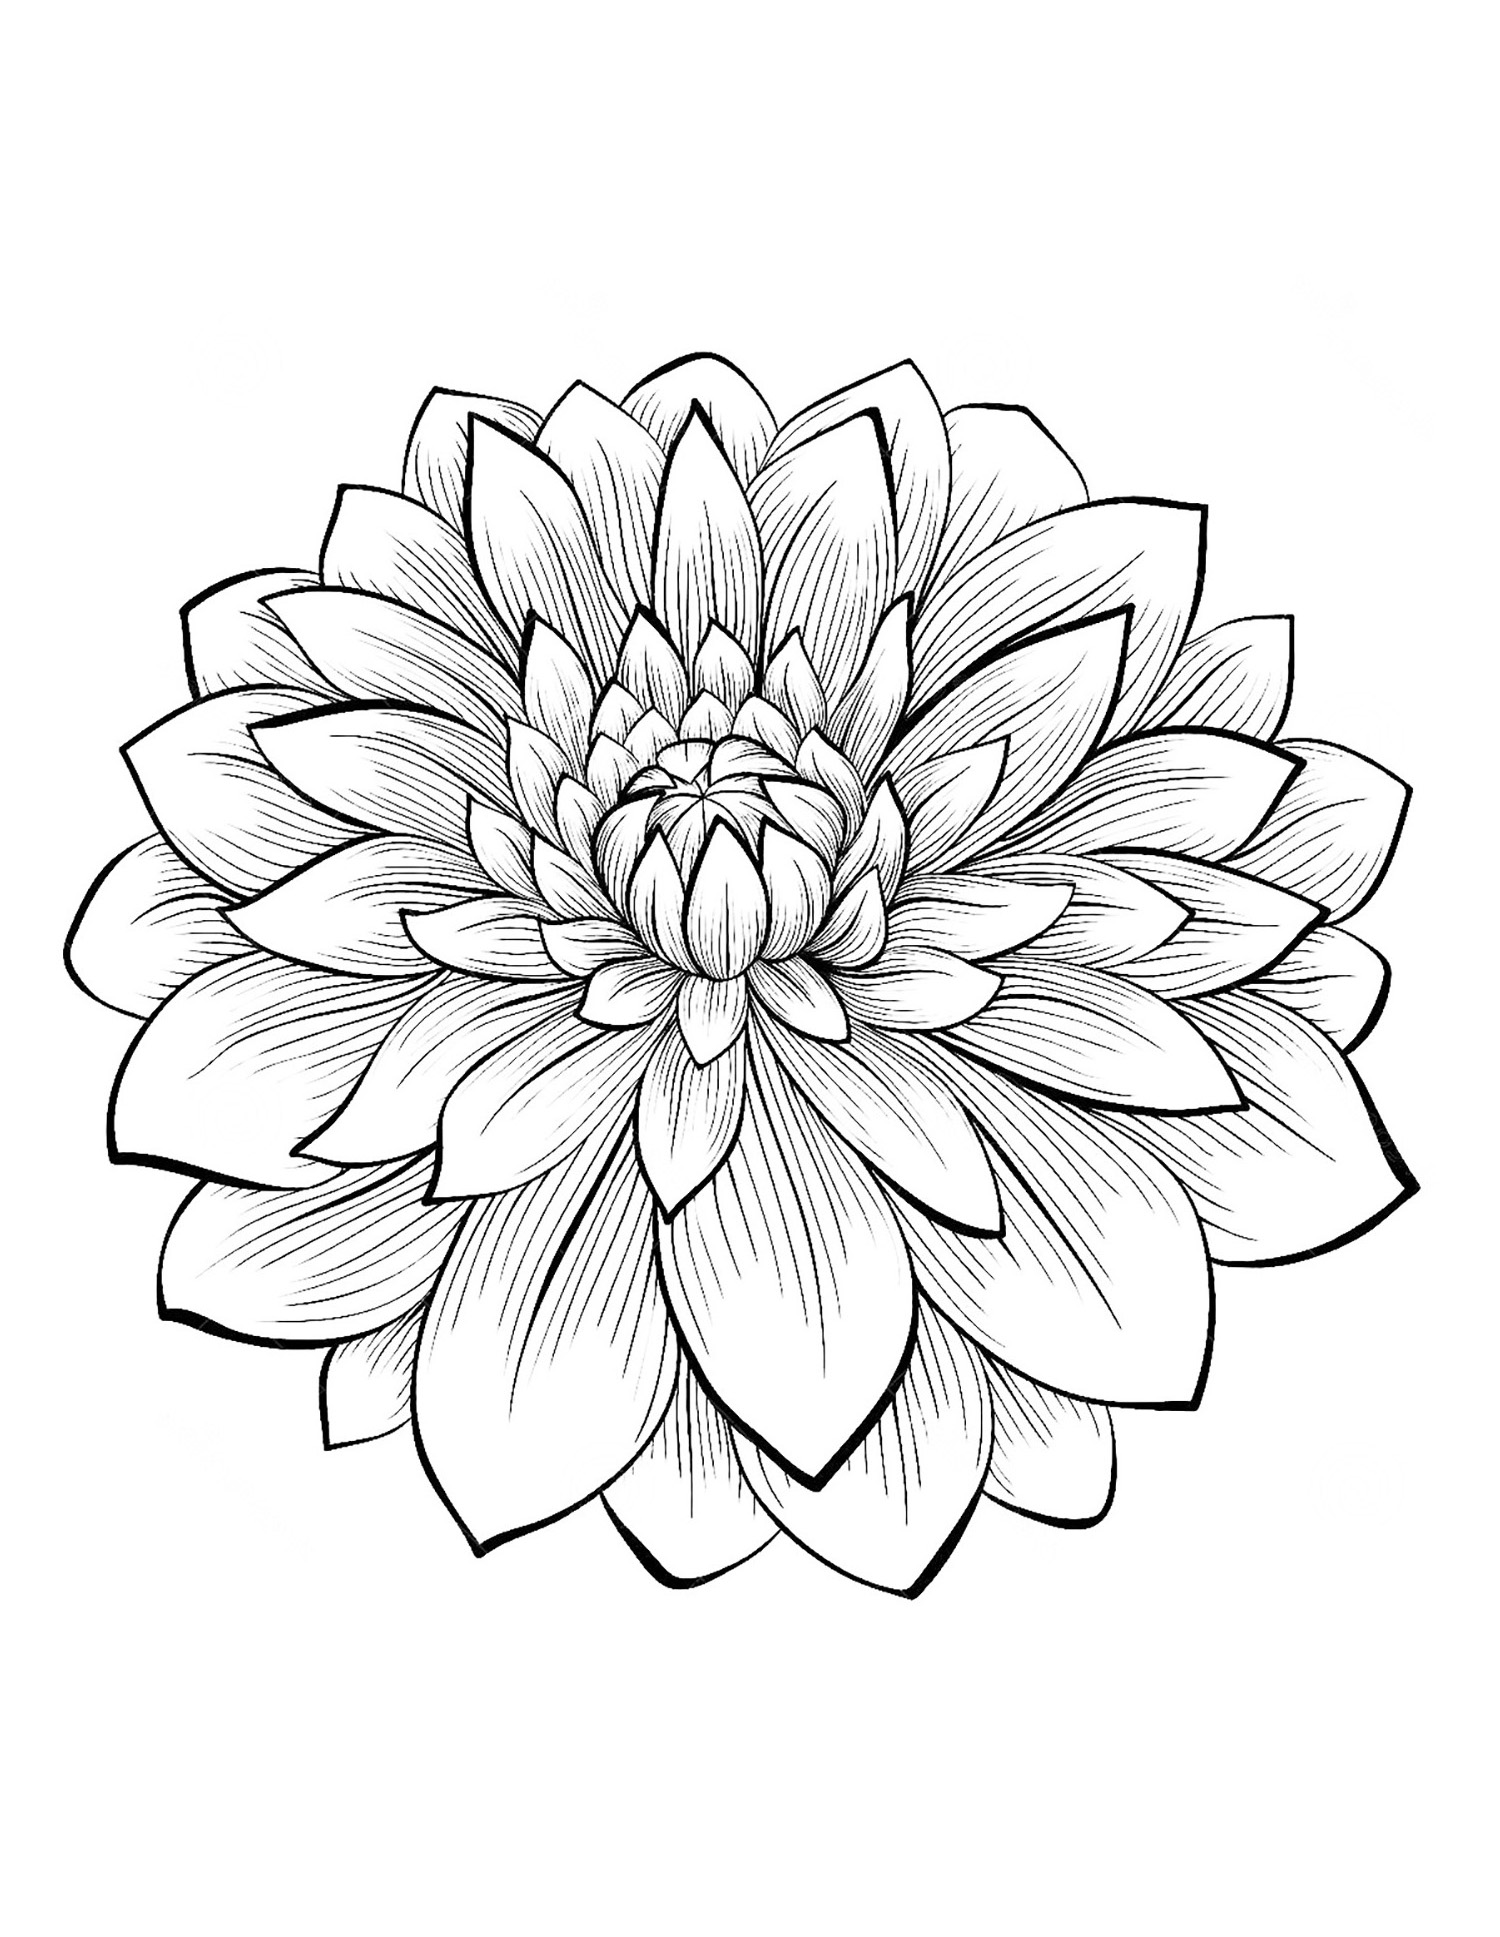 1 dahlias to print color from the gallery flowers and vegetation